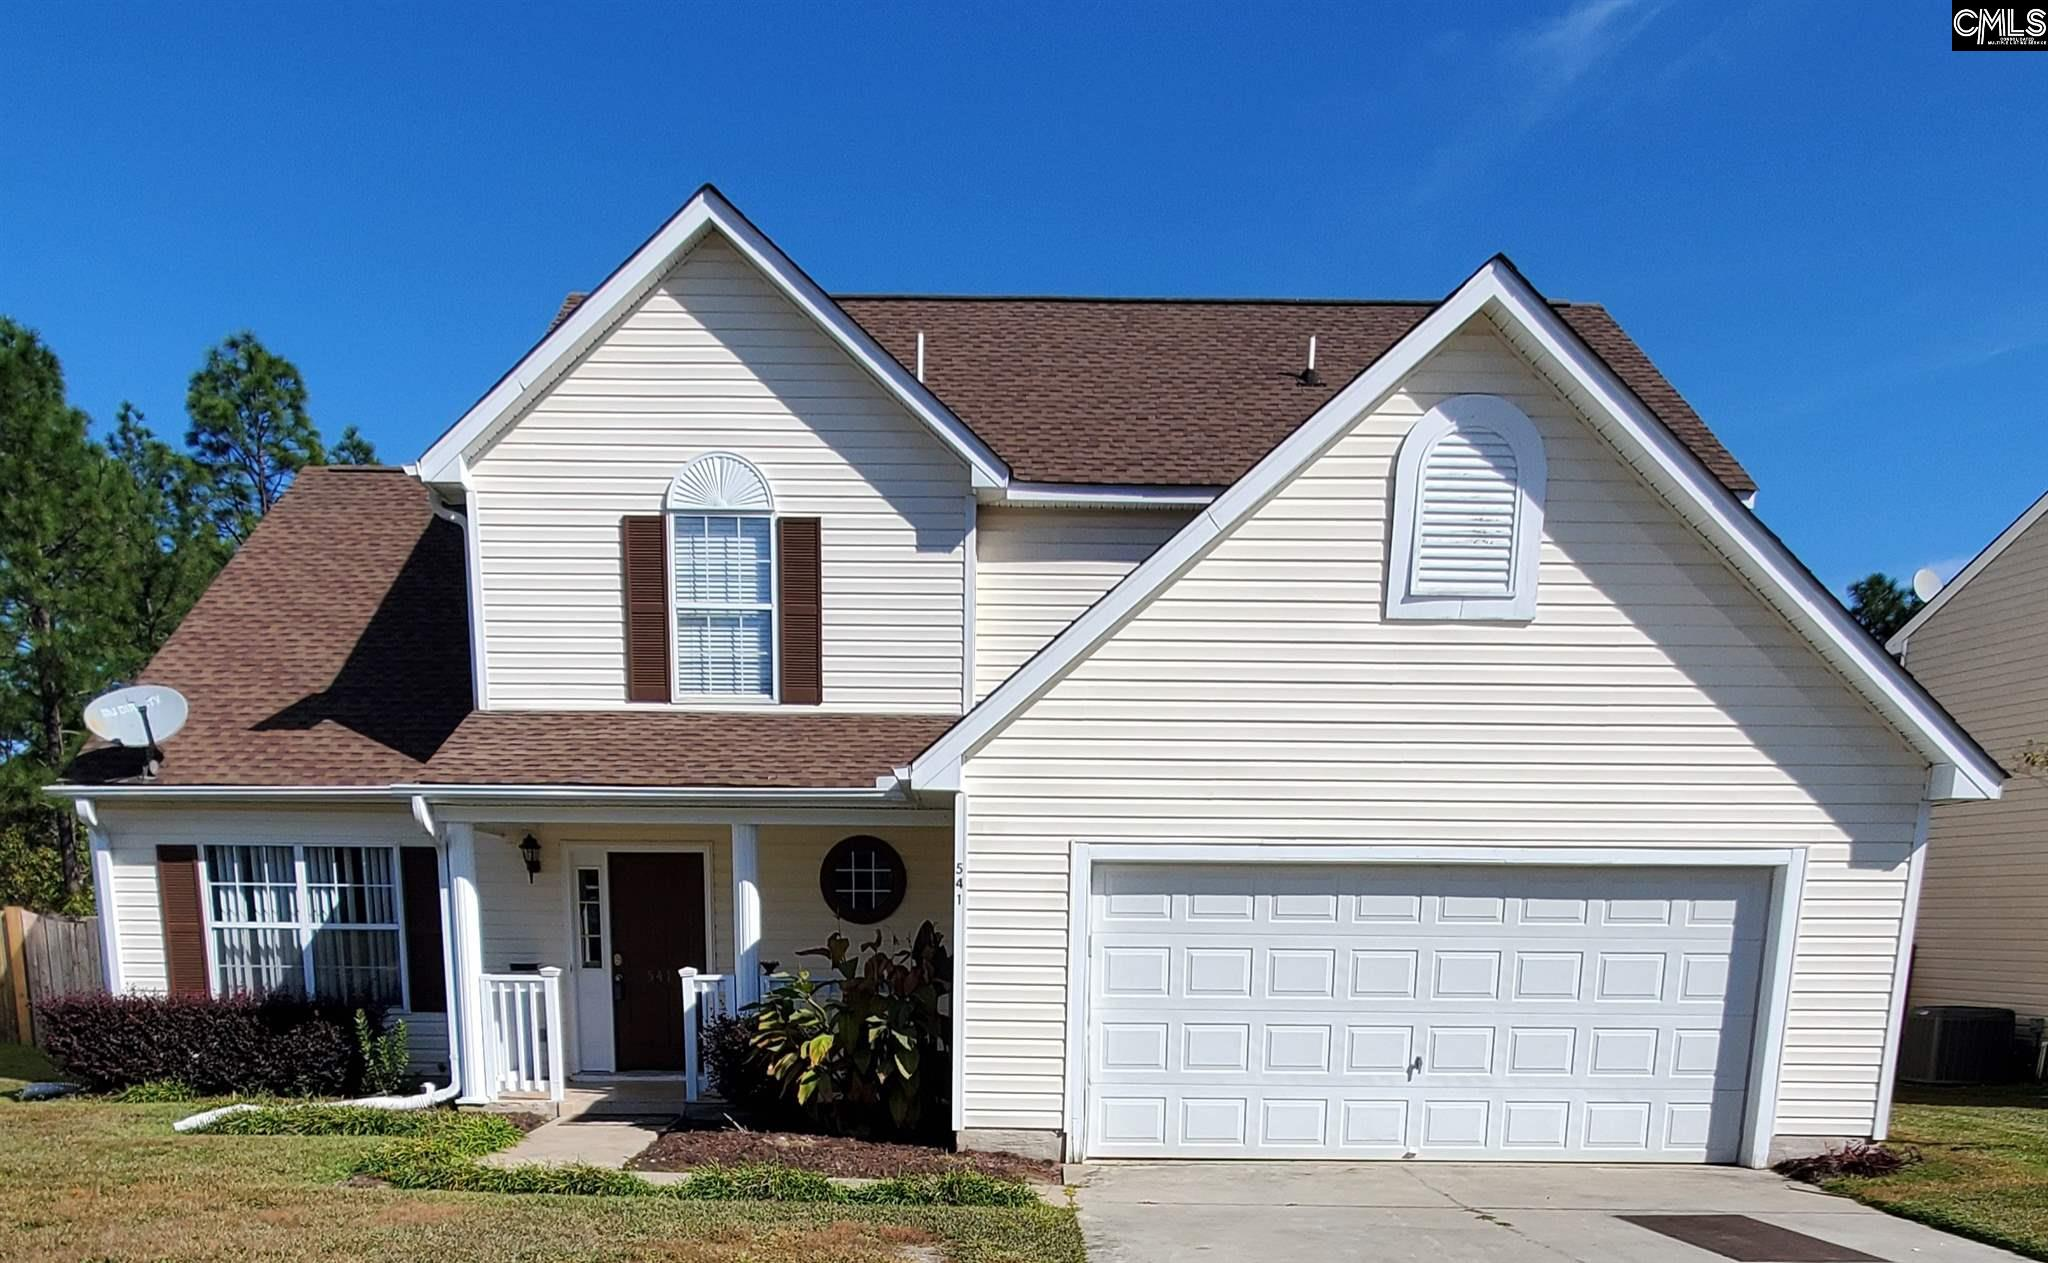 541 Autumn Glen Columbia, SC 29229